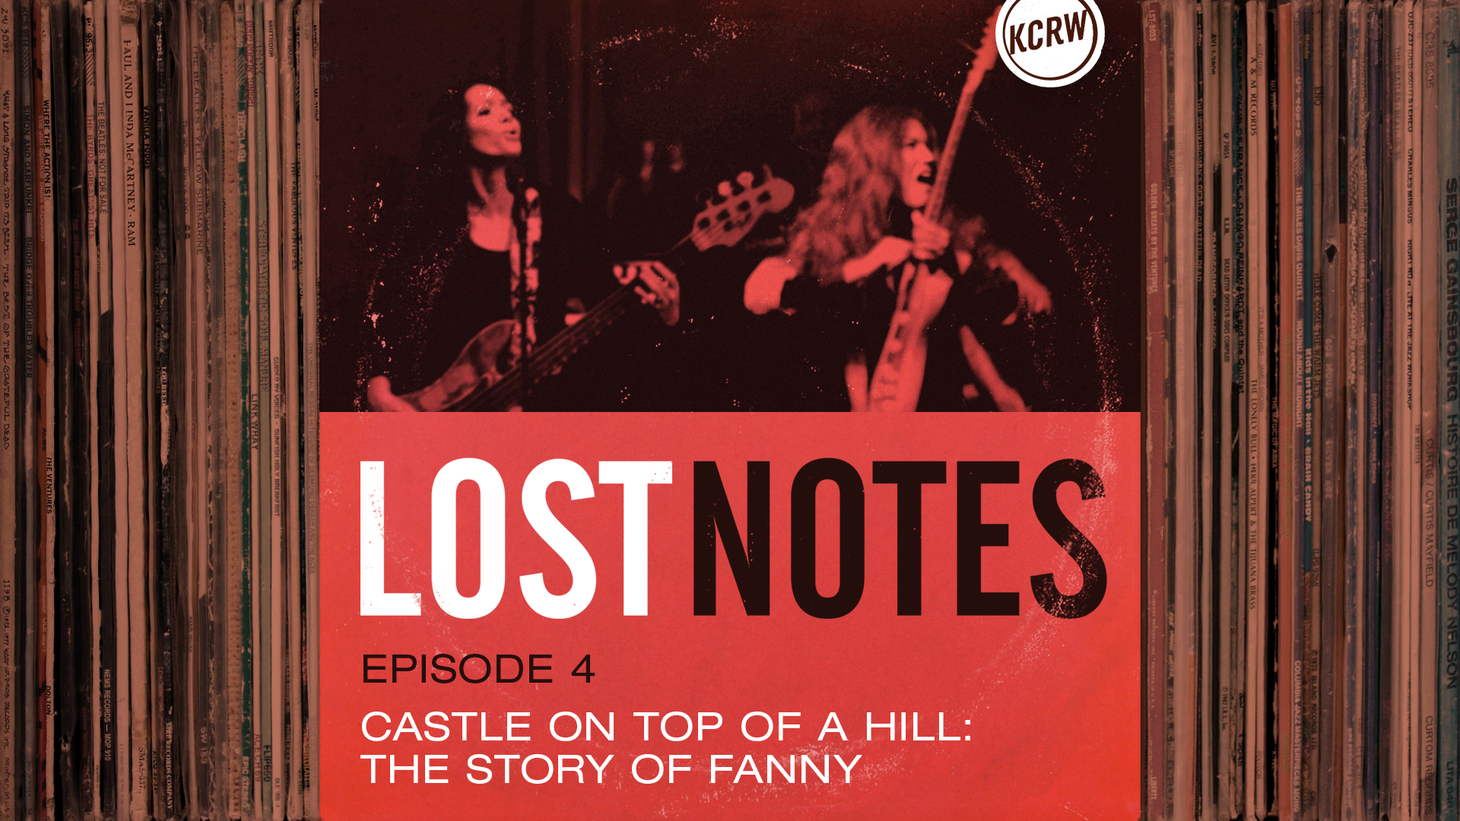 The rock band Fanny ruled the Sunset Strip in the 1970s, and they were supposed to be the next big thing. They explain the price women pay for being ahead of their time.